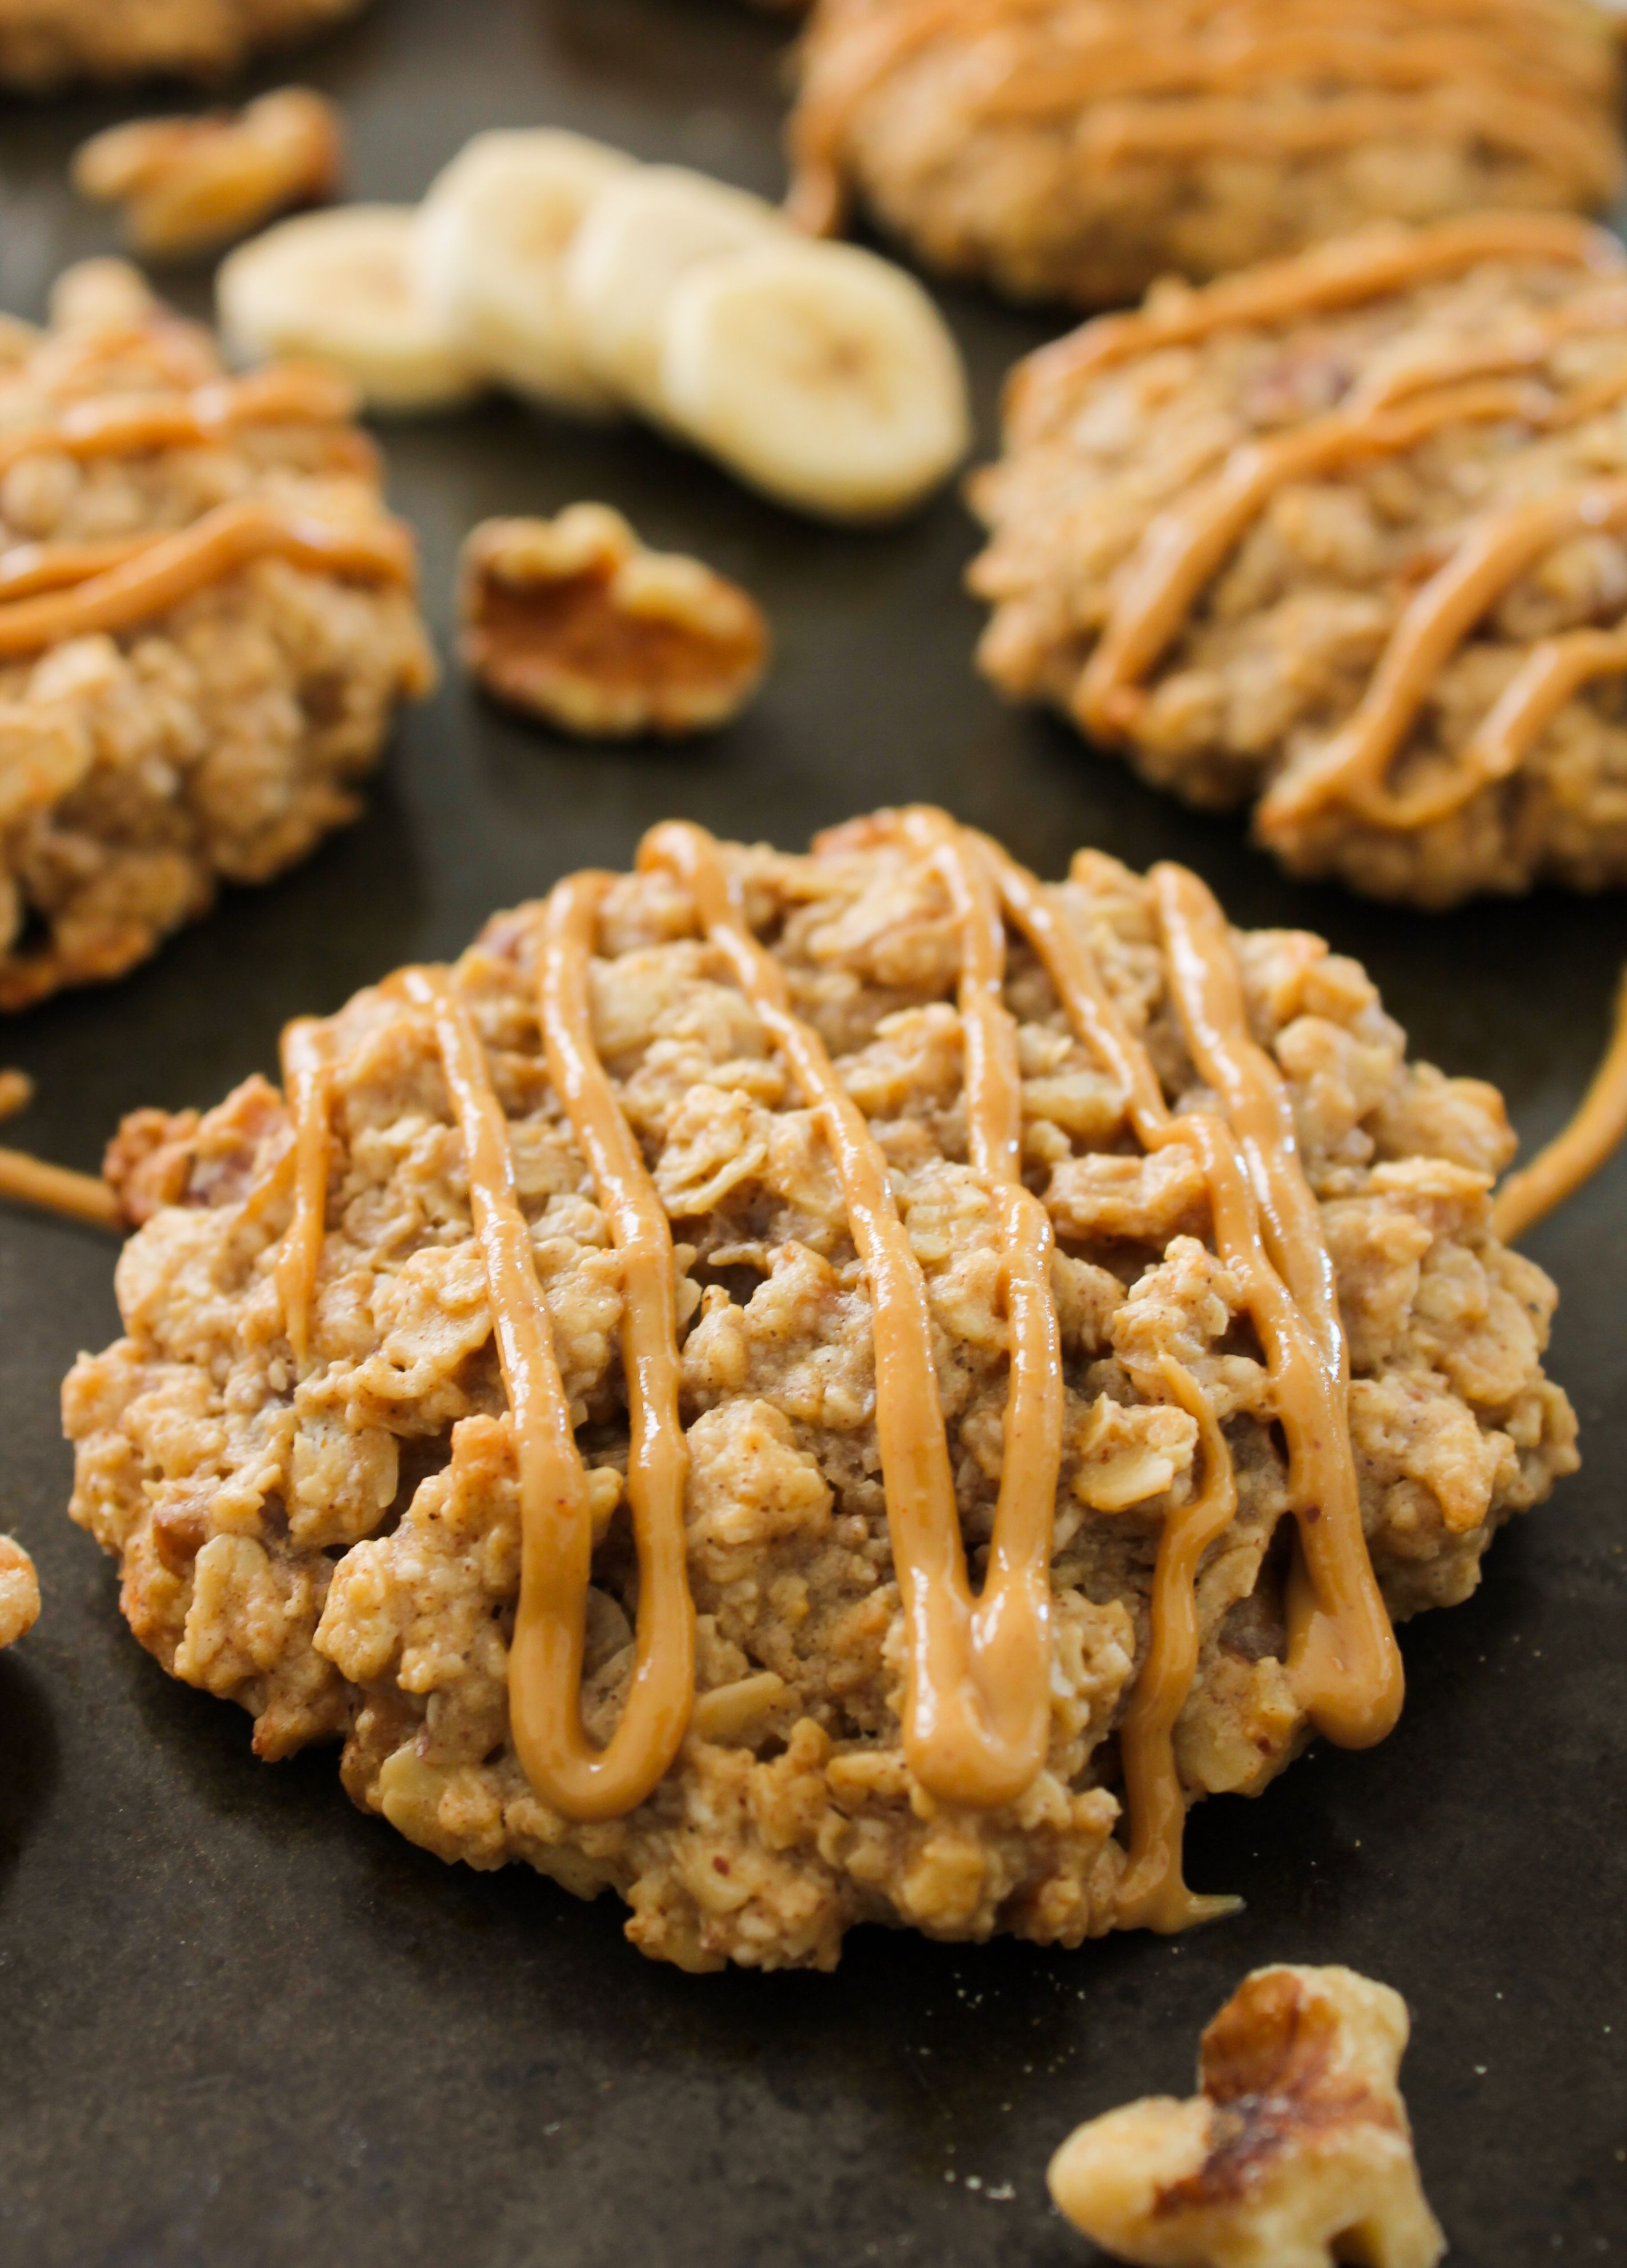 Banana Walnut Oatmeal Breakfast CookiesMade with whole grains and walnuts this is a fibrepacked breakfast cookie to keep you going all morning No refined sugar glutenfree...